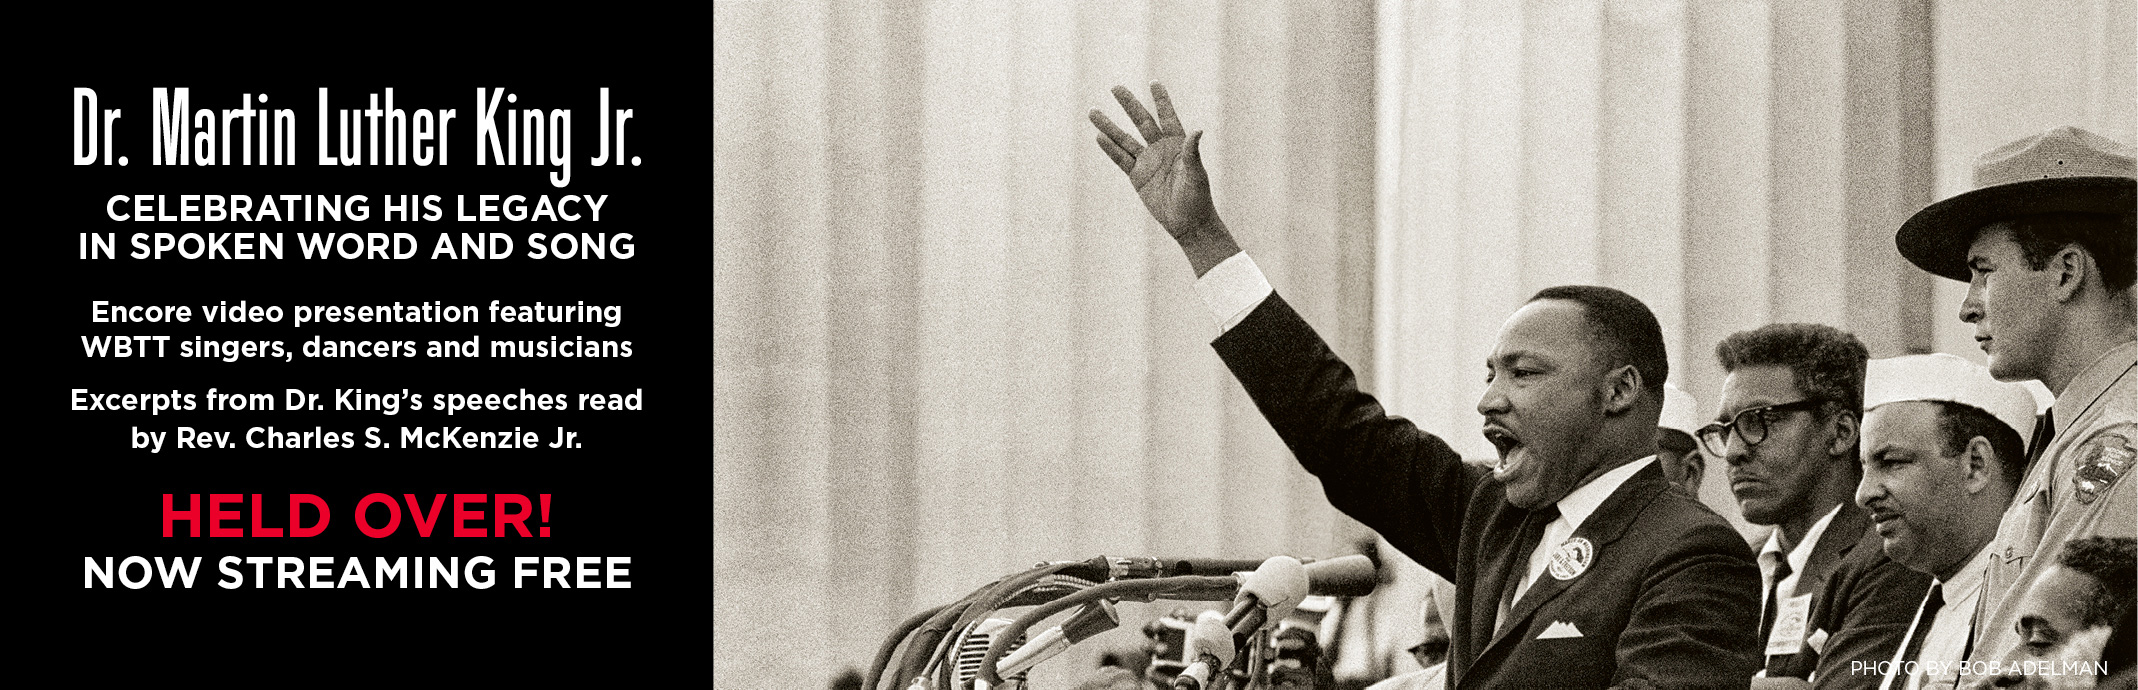 Dr. Martin Luther King Jr. Celebrating His Legacy in Spoken Work and Song. Streaming Free!